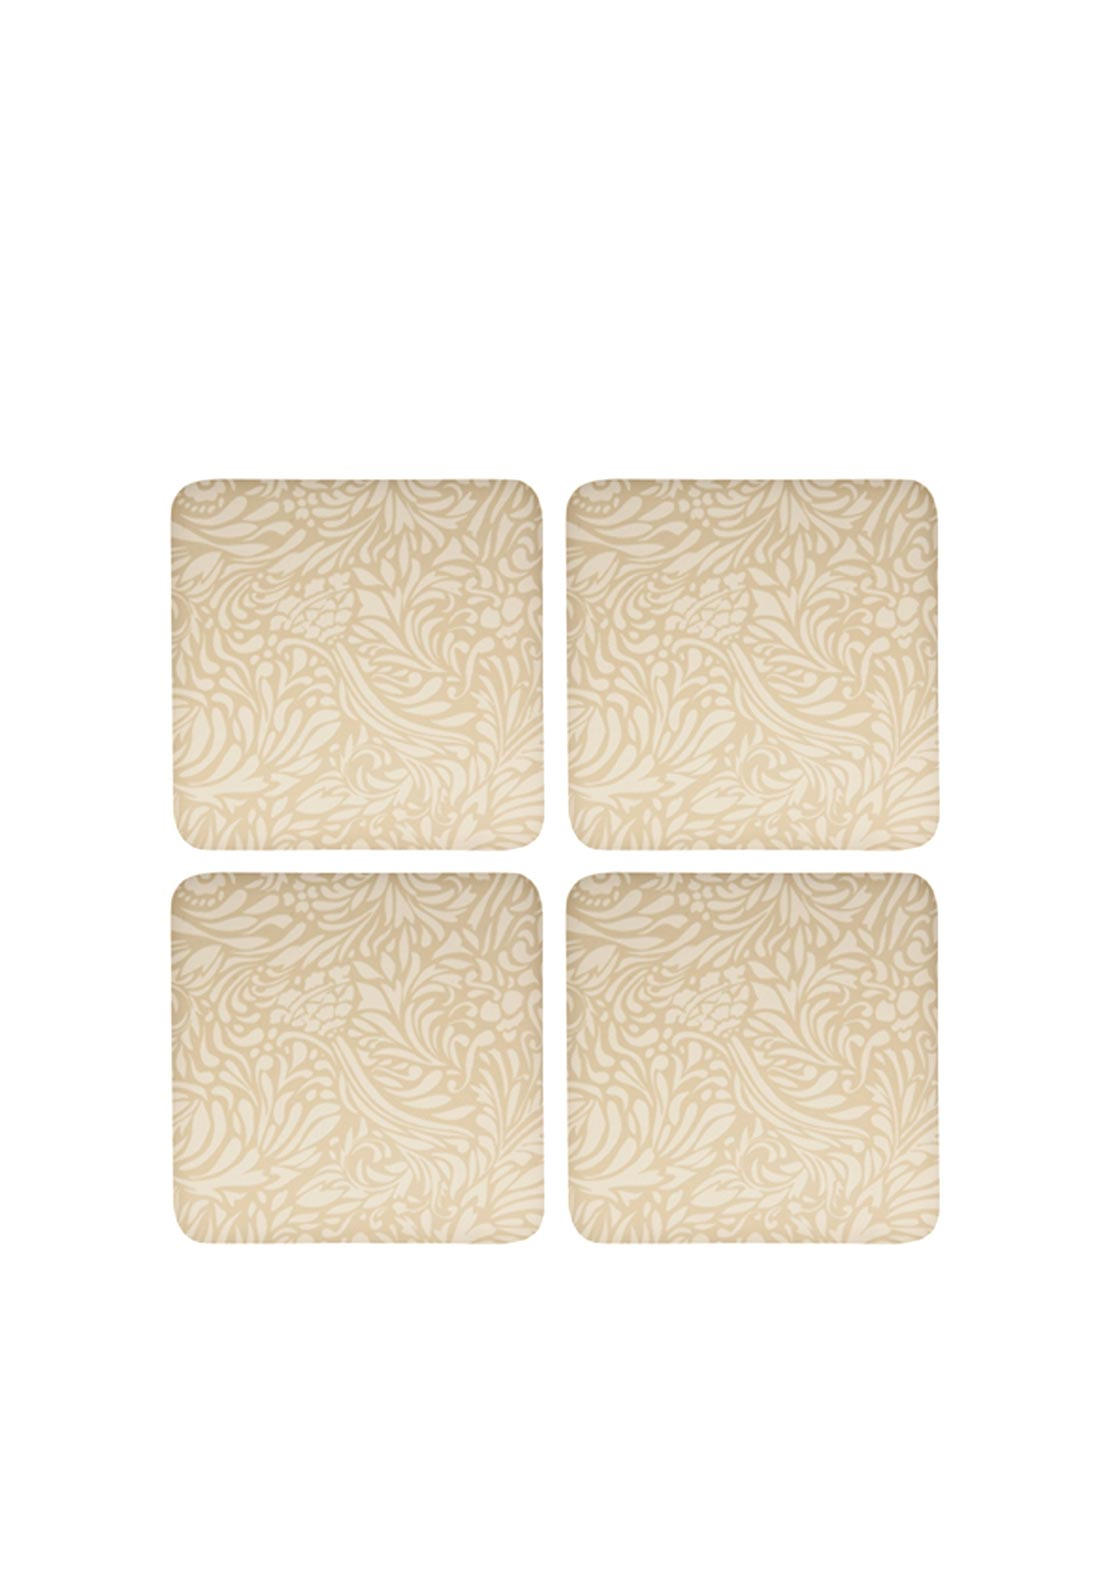 Denby Monsoon Home Set of Four Coasters, Lucille Gold & Cream